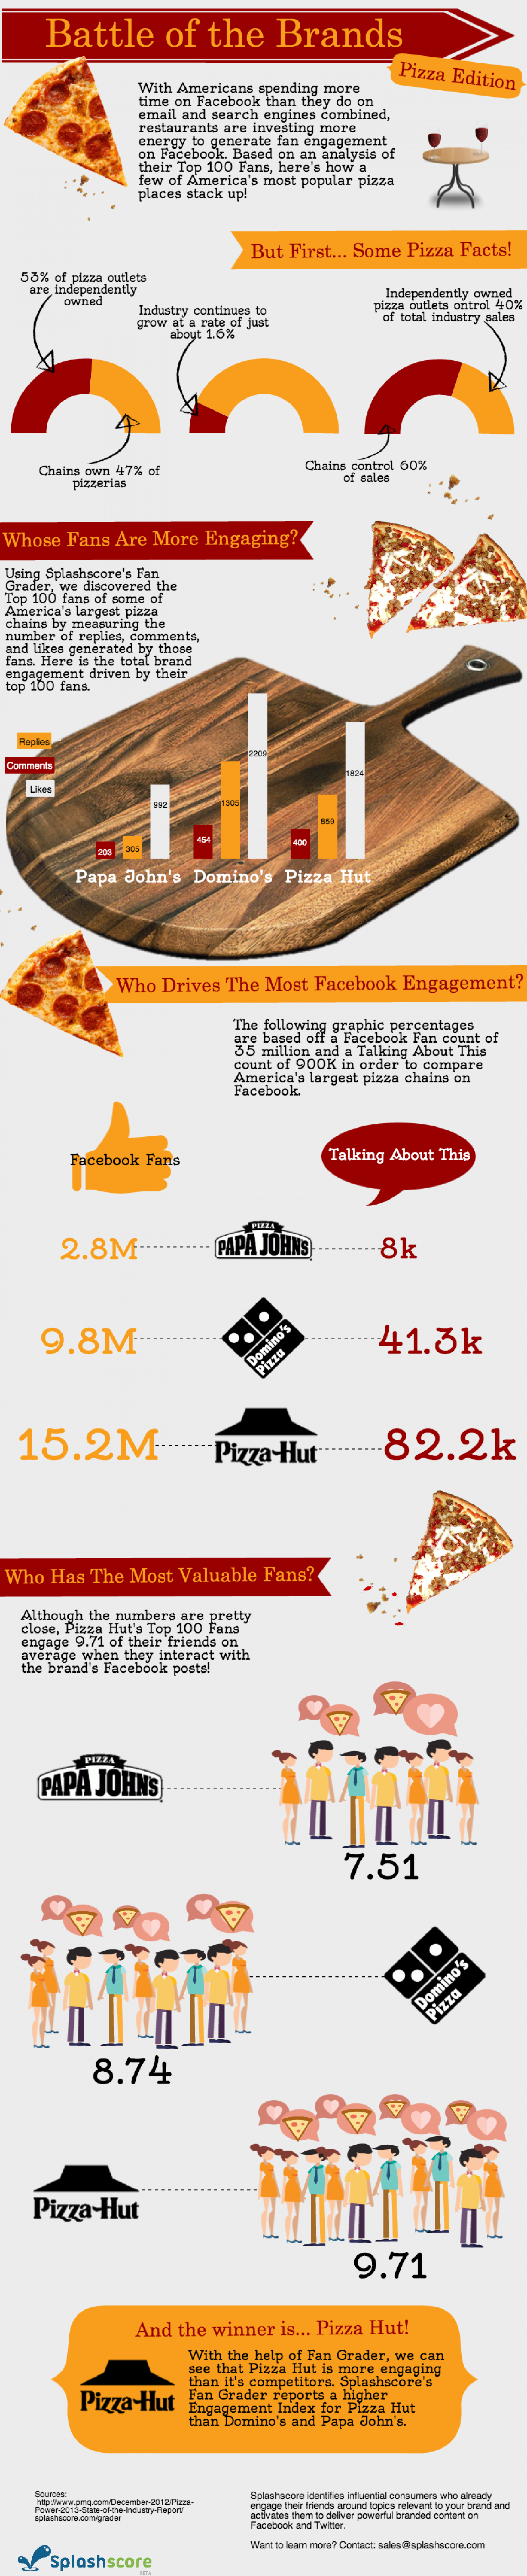 Battle of the Brands: Pizza Edition  Infographic